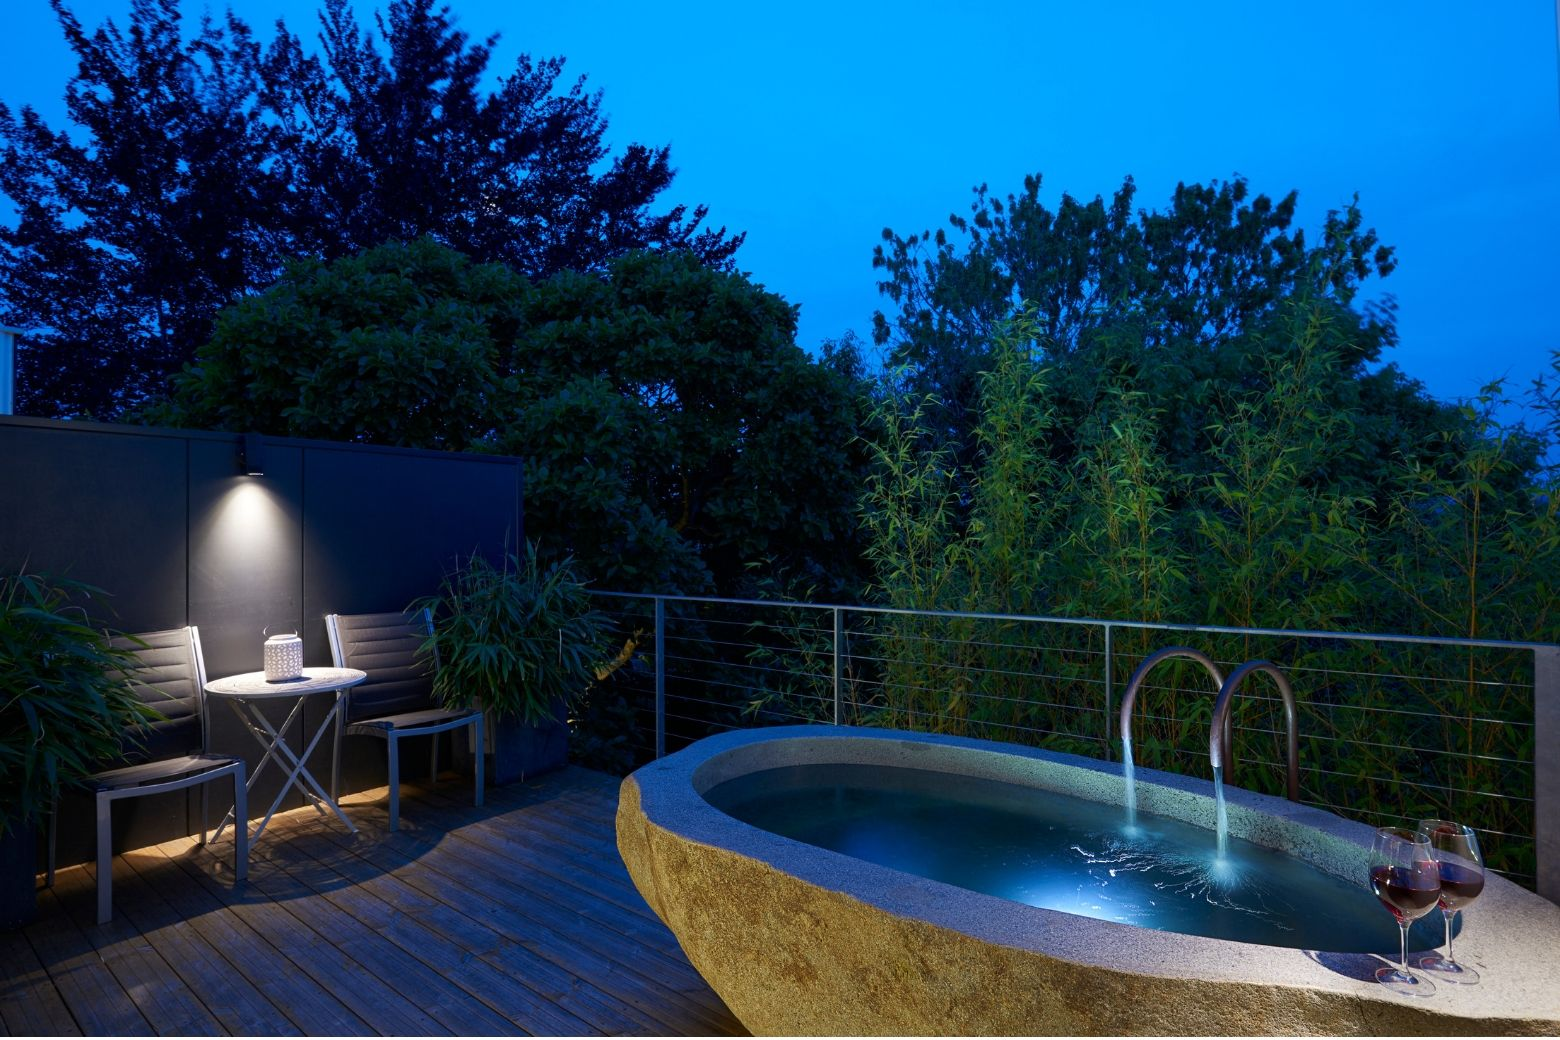 Your own secluded outdoor bath - Launceston Accommodation - Tasmania Road Trip